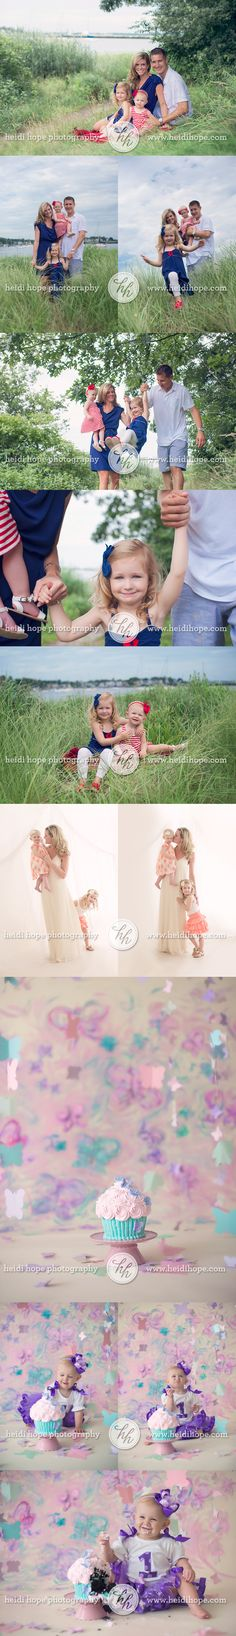 An outdoor family session for the fourth of July and a sweet butterfly cakesmash for birthday girl M!